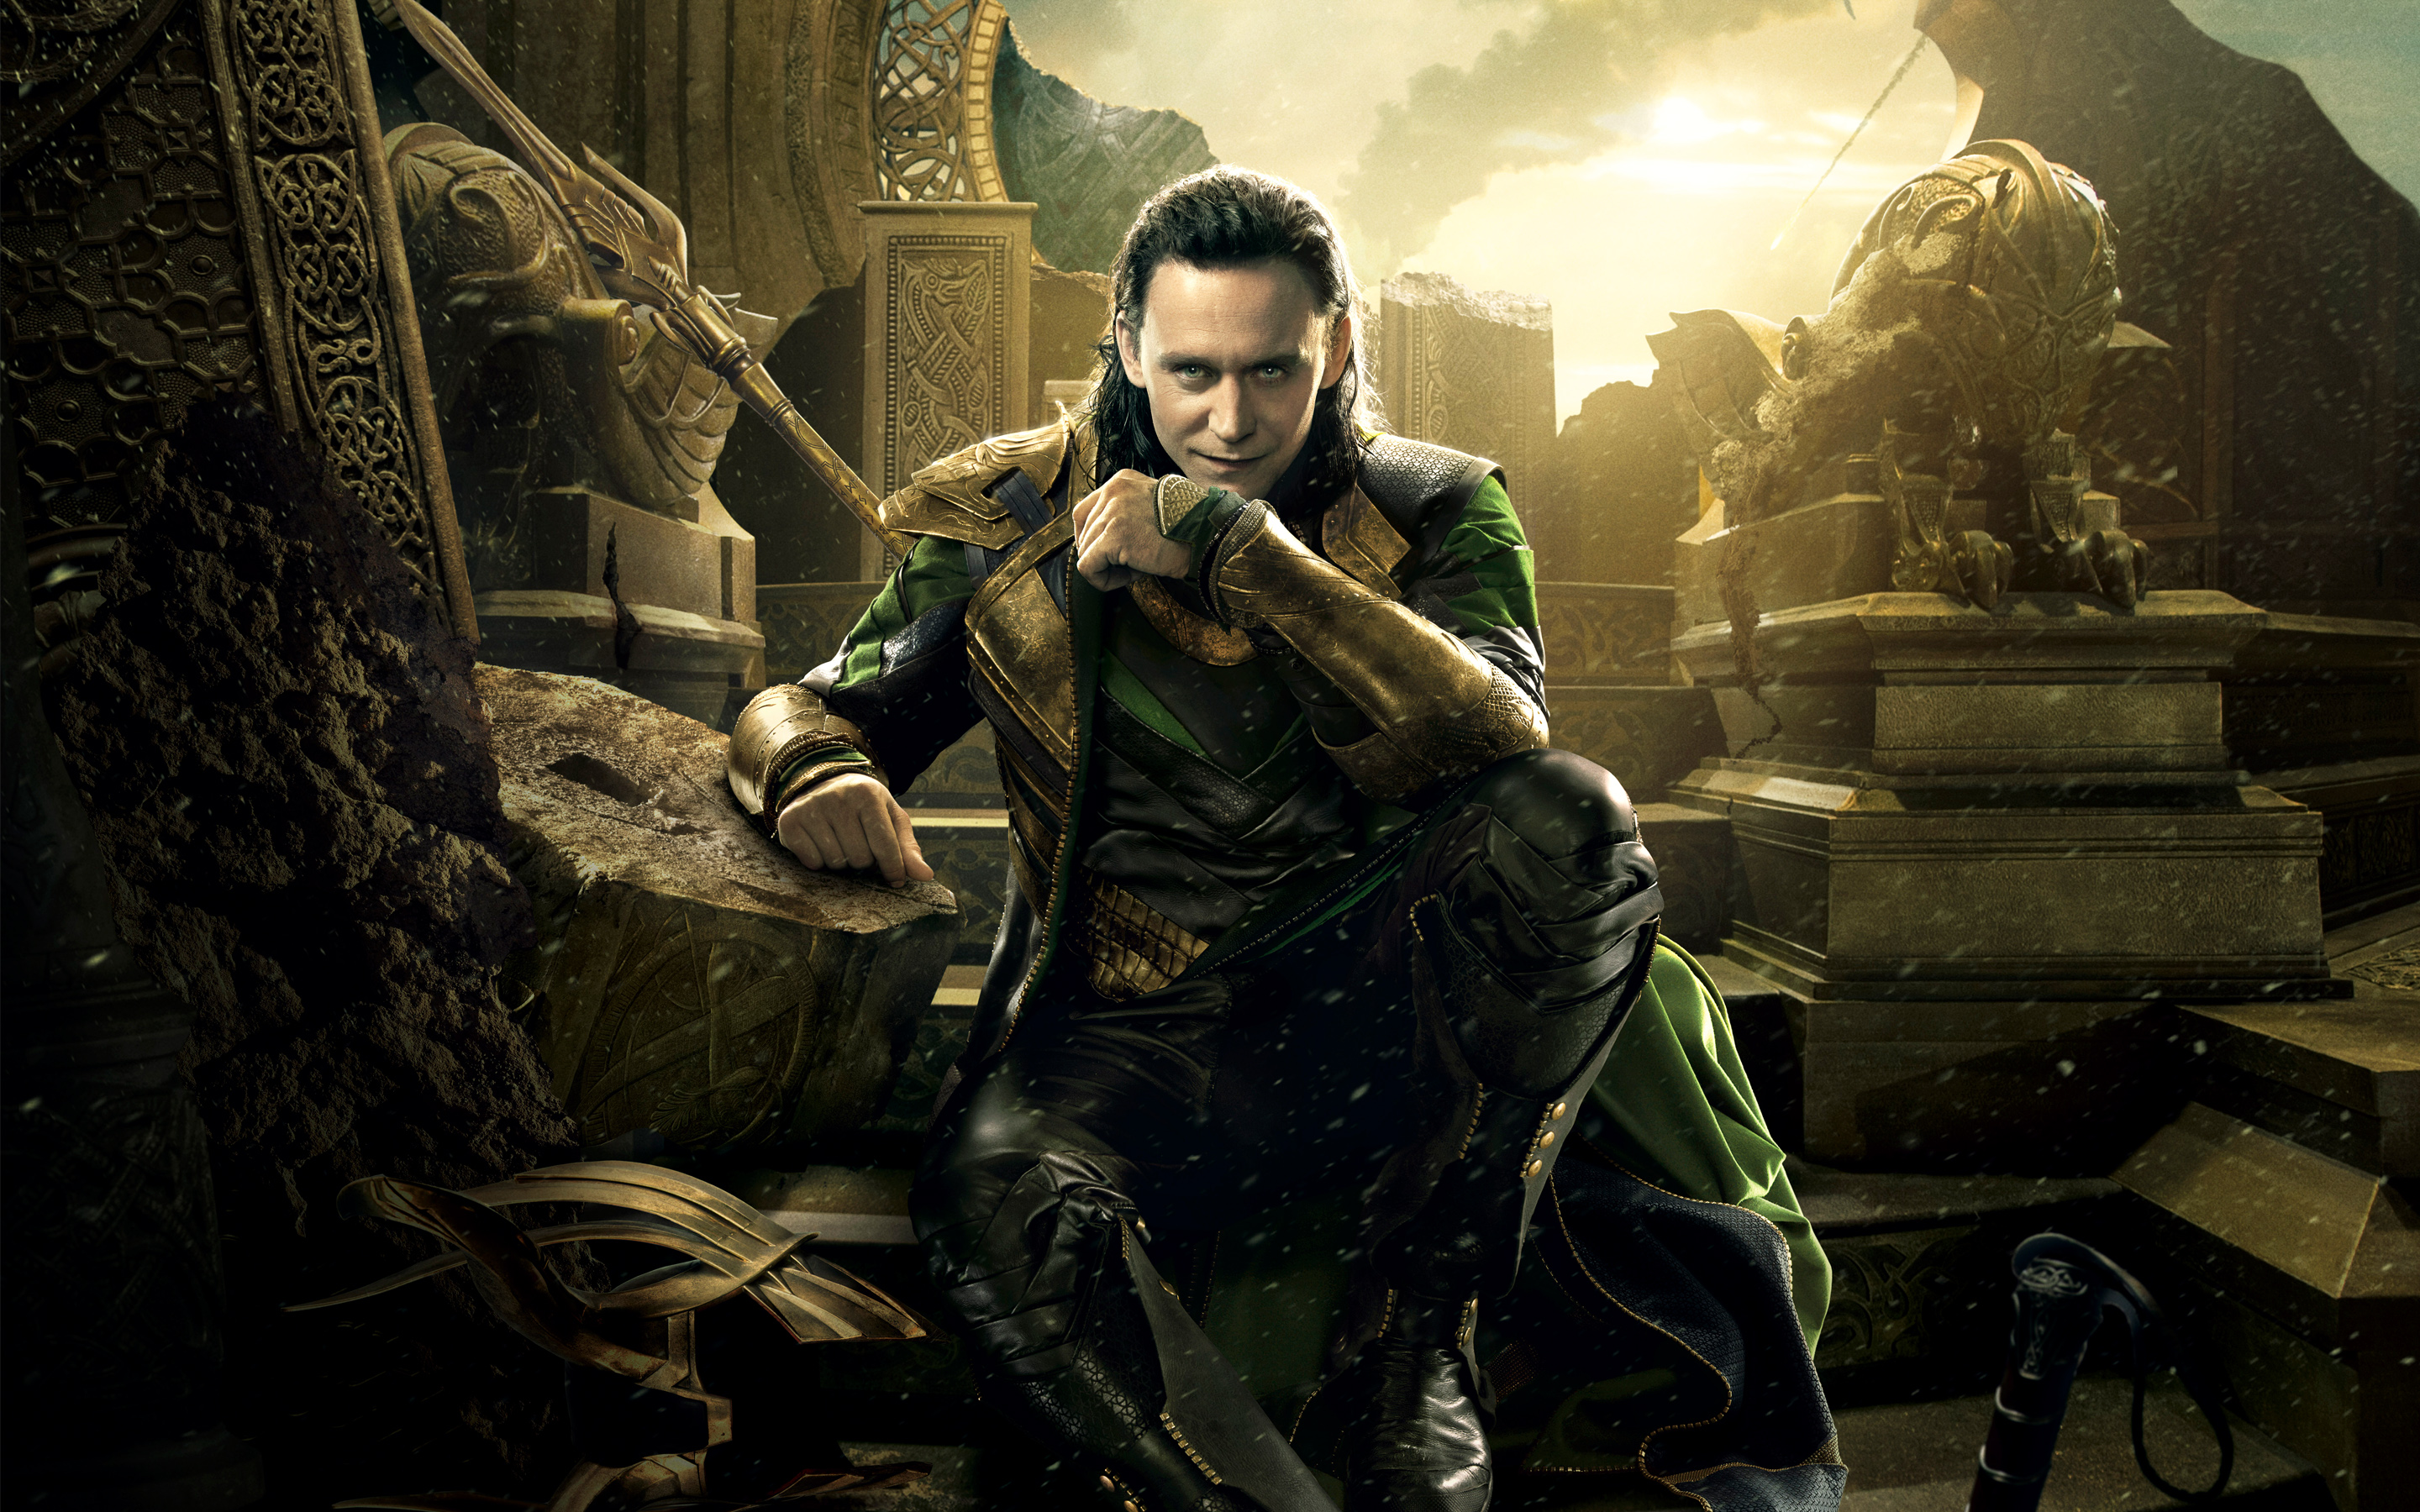 loki in thor 2 wallpapers | wallpapers hd